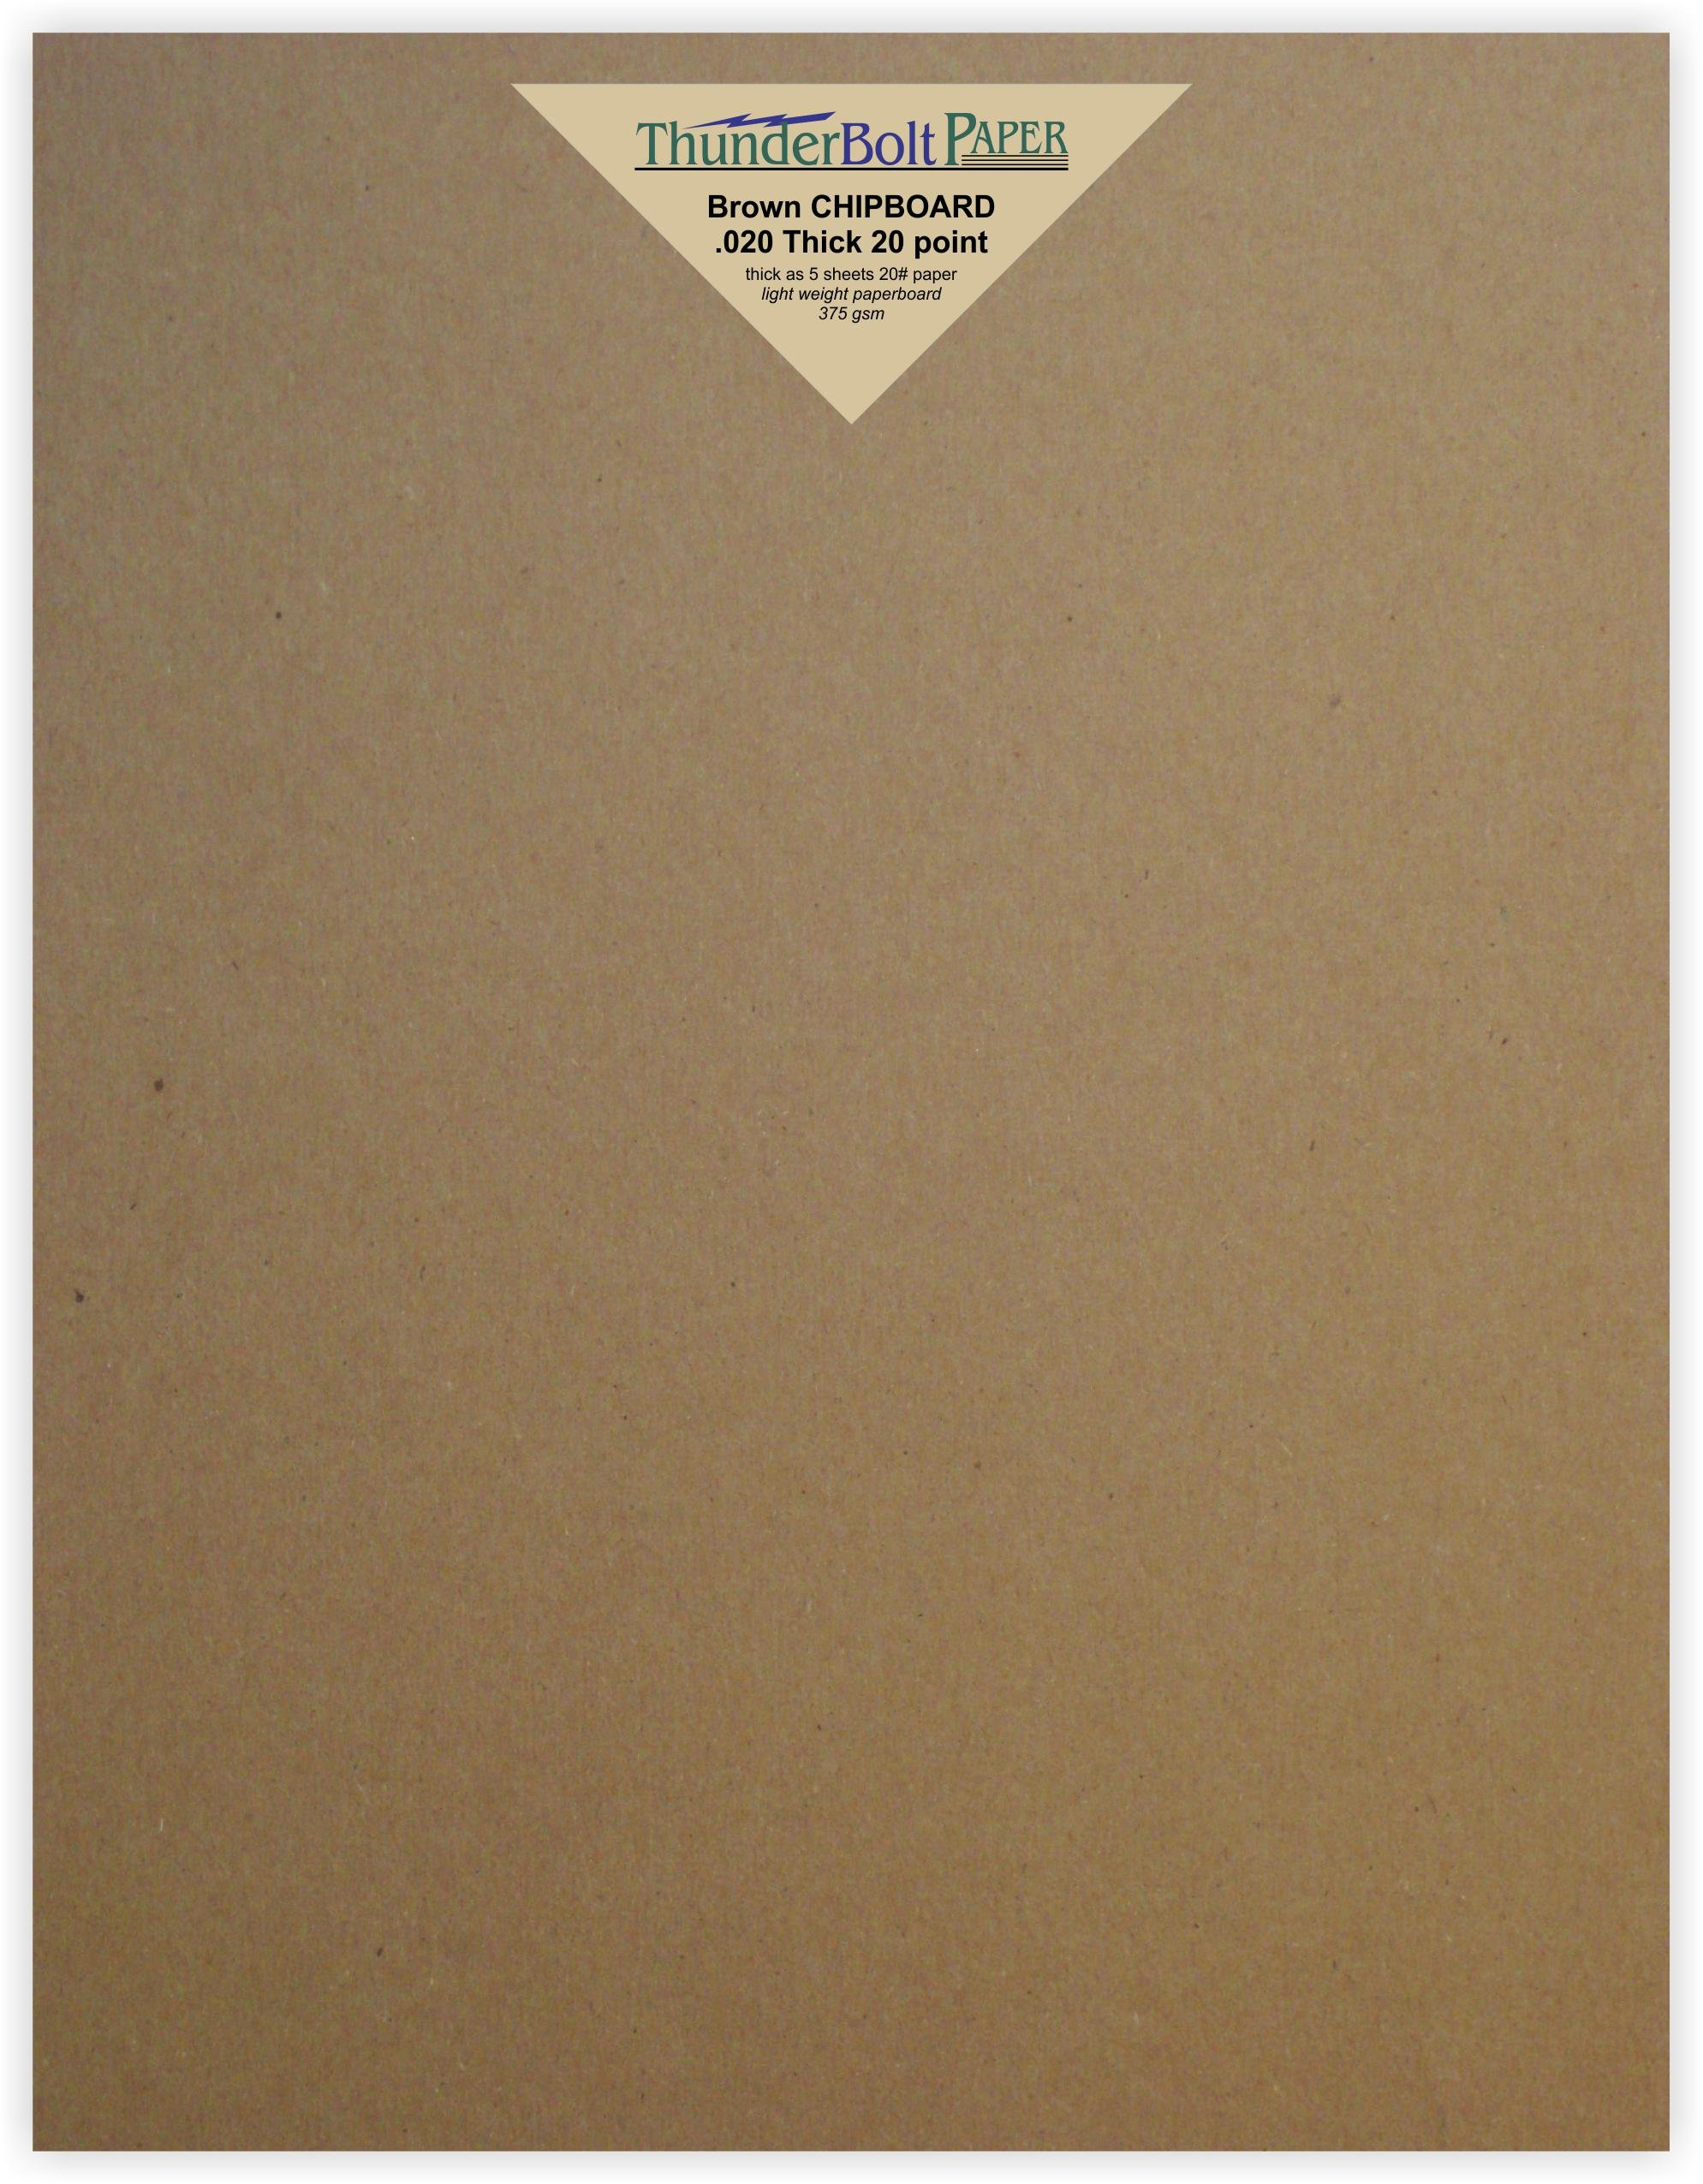 Caliper White Coated on Brown Kraft Cardboard Paper Large|Poster Size Medium Weight Thickness PaperBoard .032 12X18 Inches 12 X 18 10 Sheets Chipboard 32pt White 1 Side Point